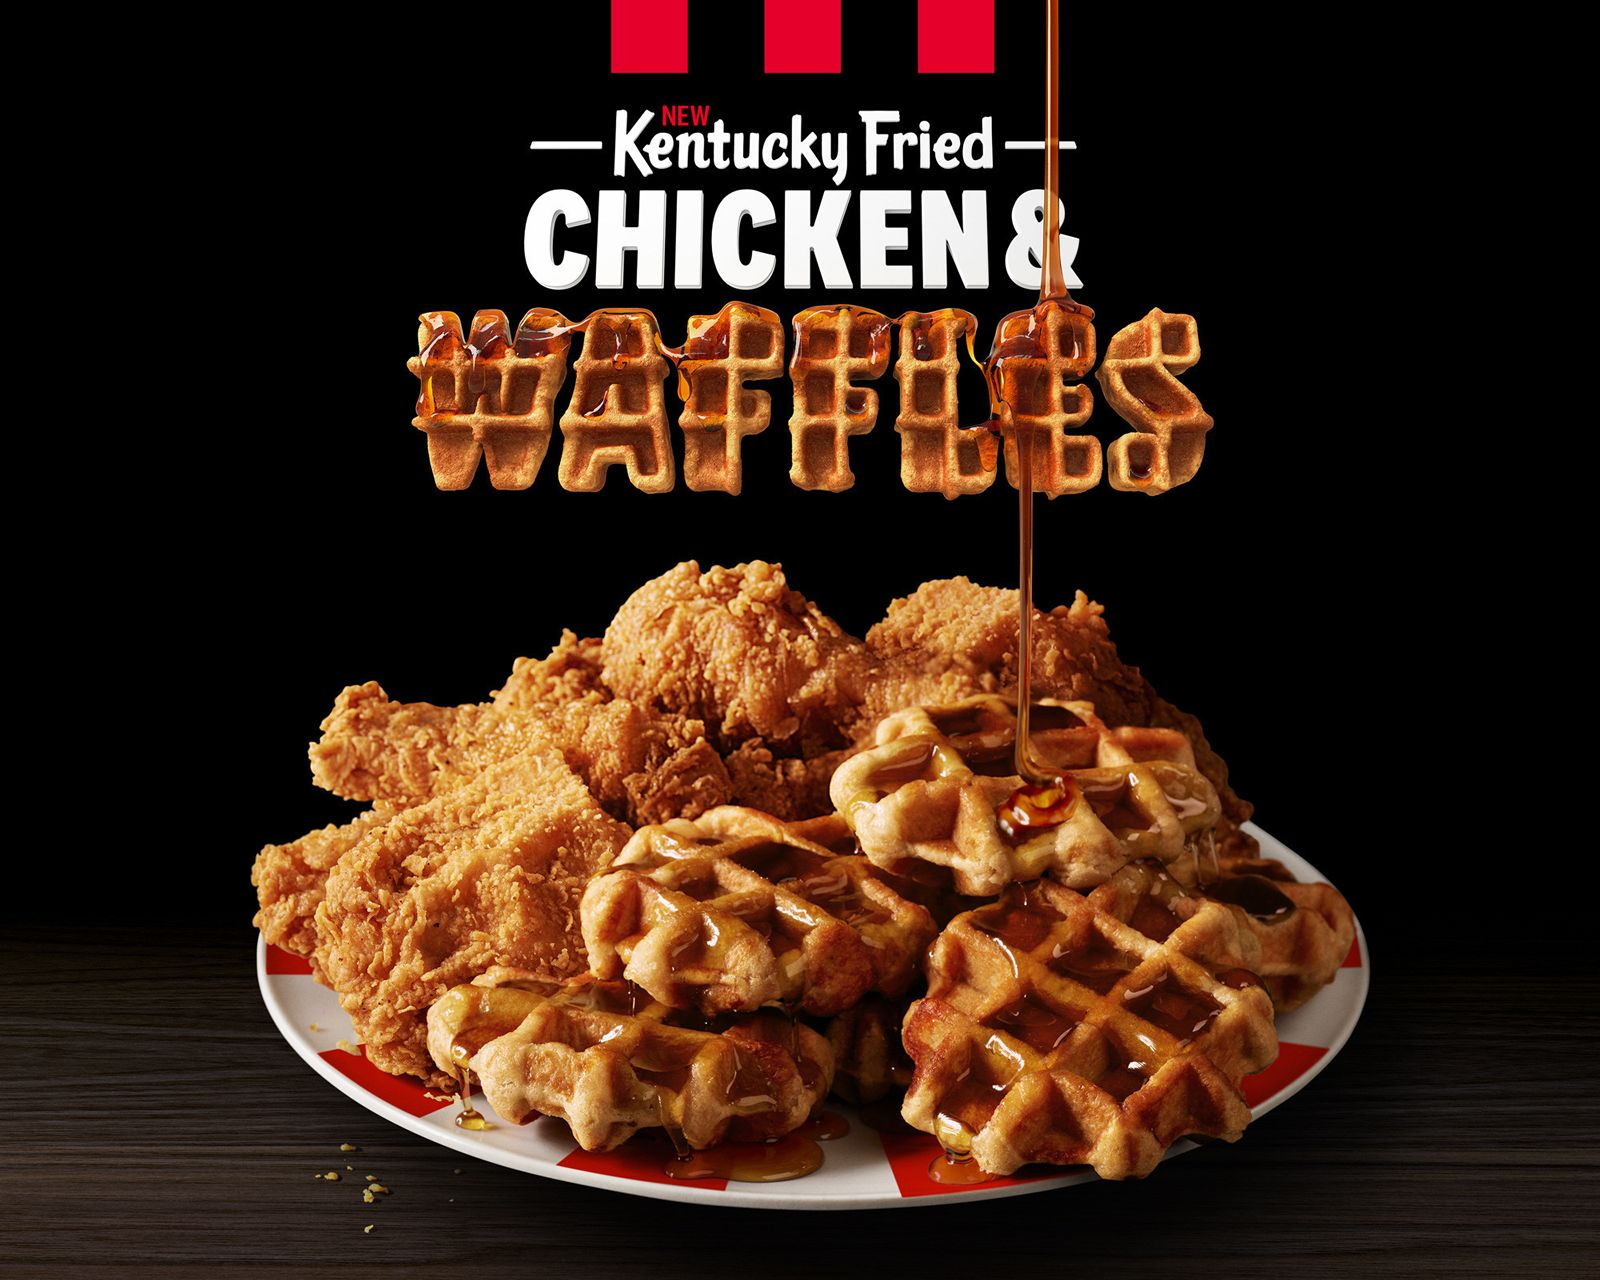 KFC Is (Finally!) Serving Chicken & Waffles - Now You Can Have Brunch Anytime, Anywhere